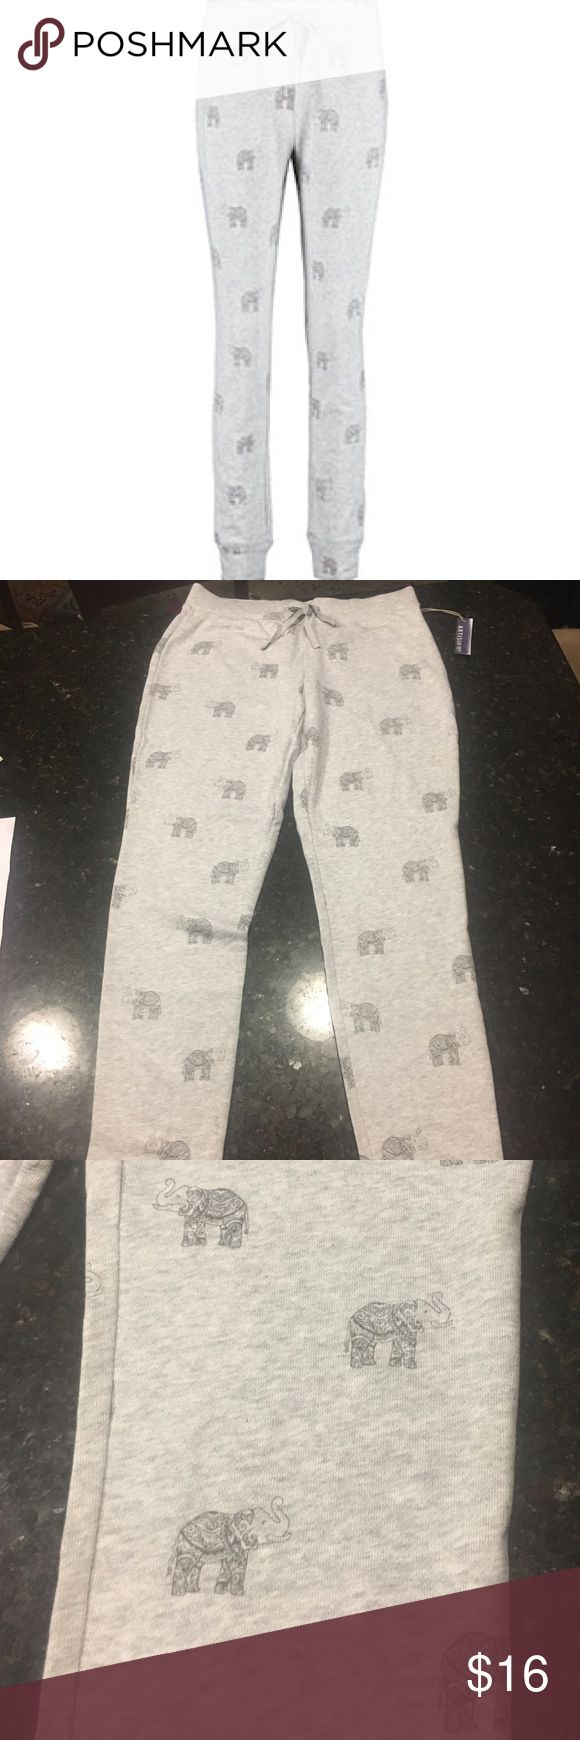 Artisan NY Jogger Sweatpants Never worn with tags! Very soft and comfy sweatpants with elephant print. Artisan NY Pants Track Pants & Joggers